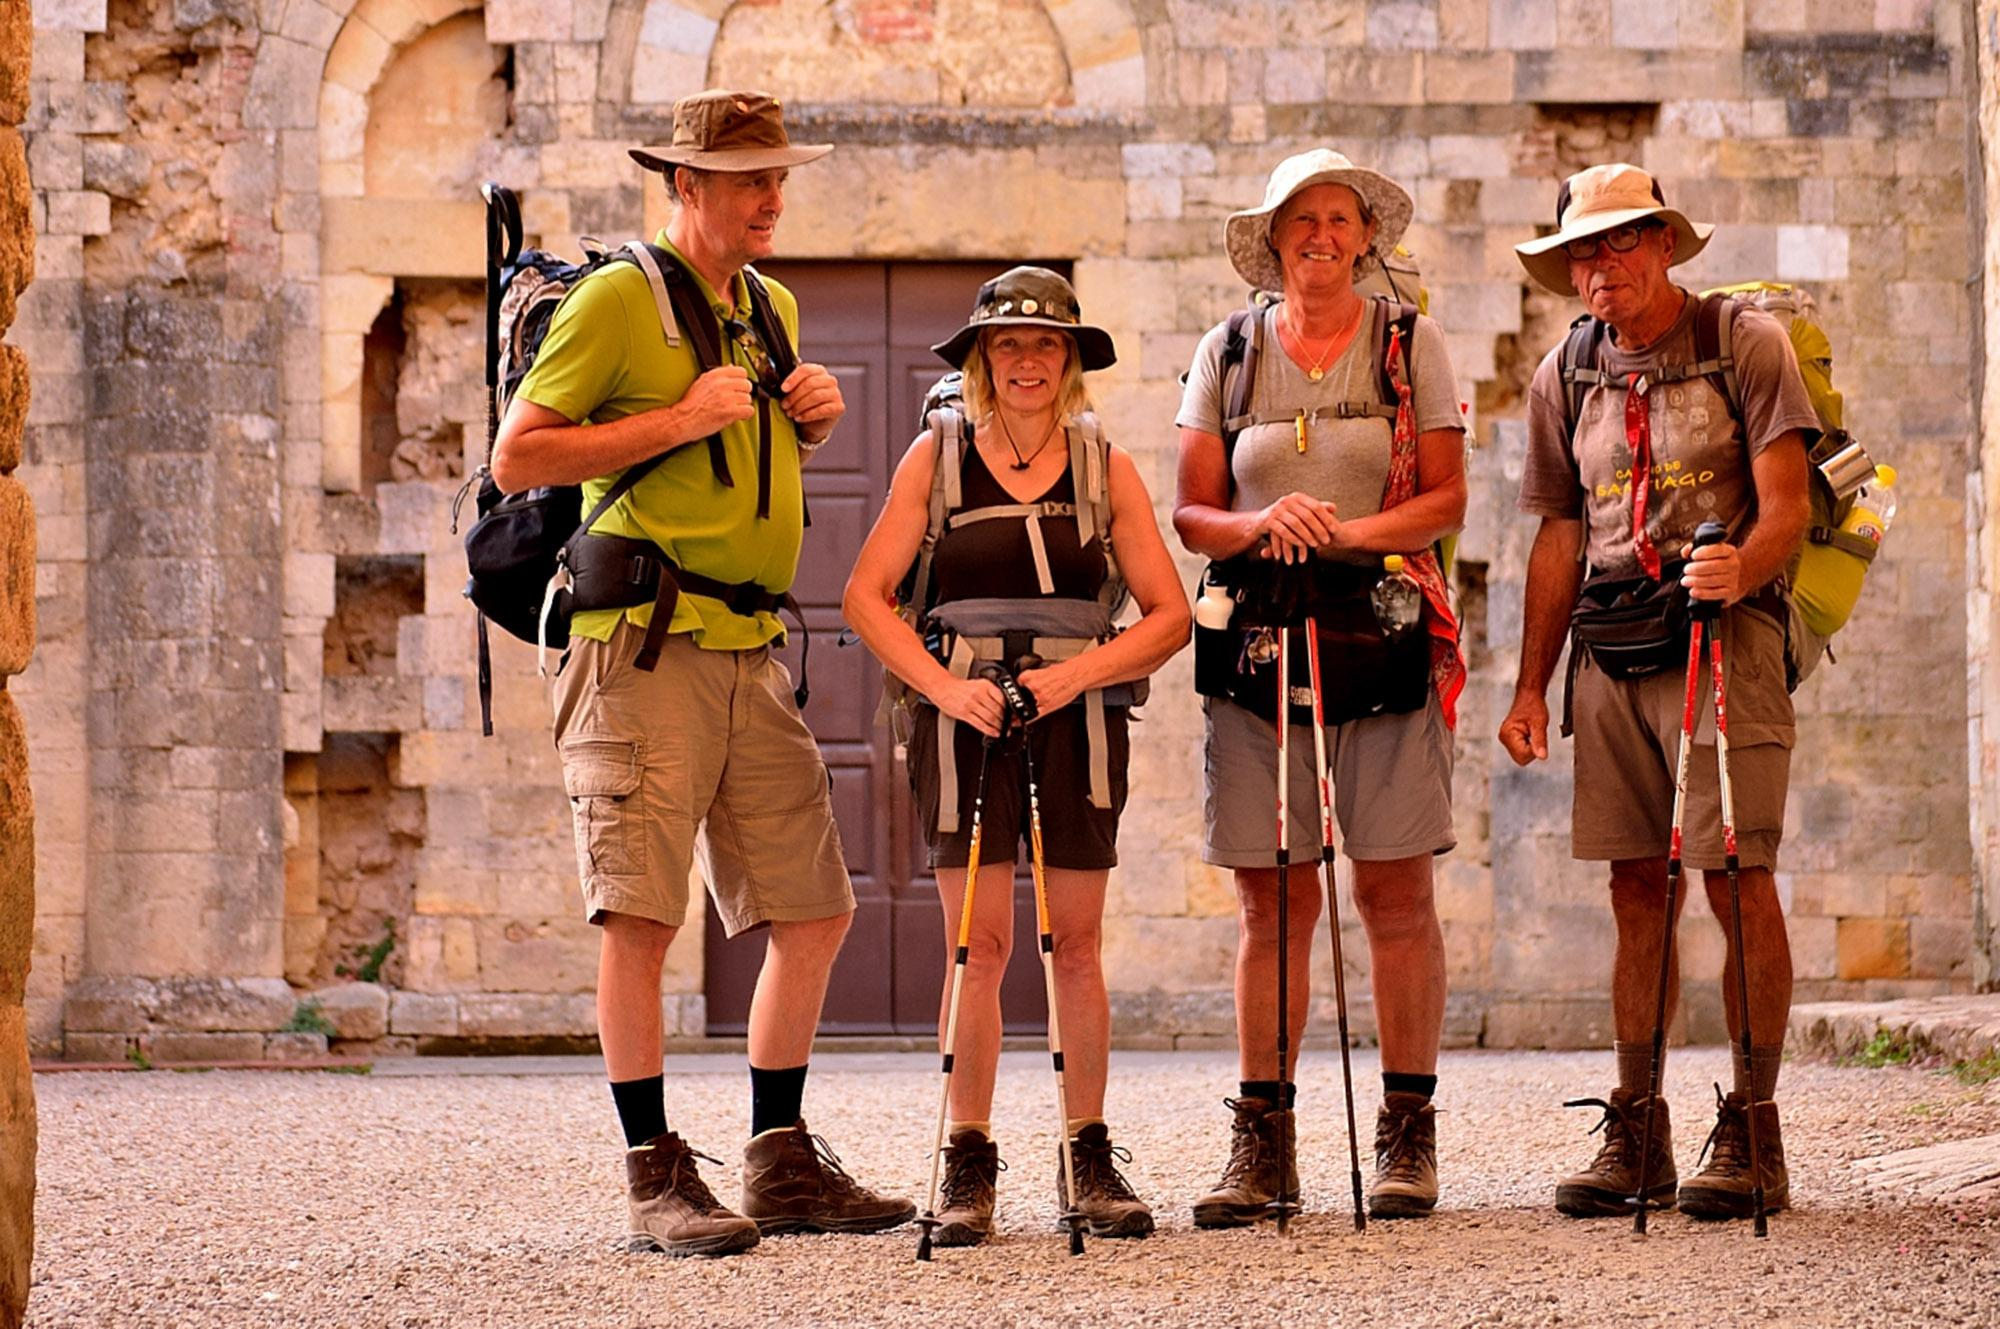 Pilgrims on their way along the Via Francigena. - © Tiziano Pieroni / Be Tuscan for a Day